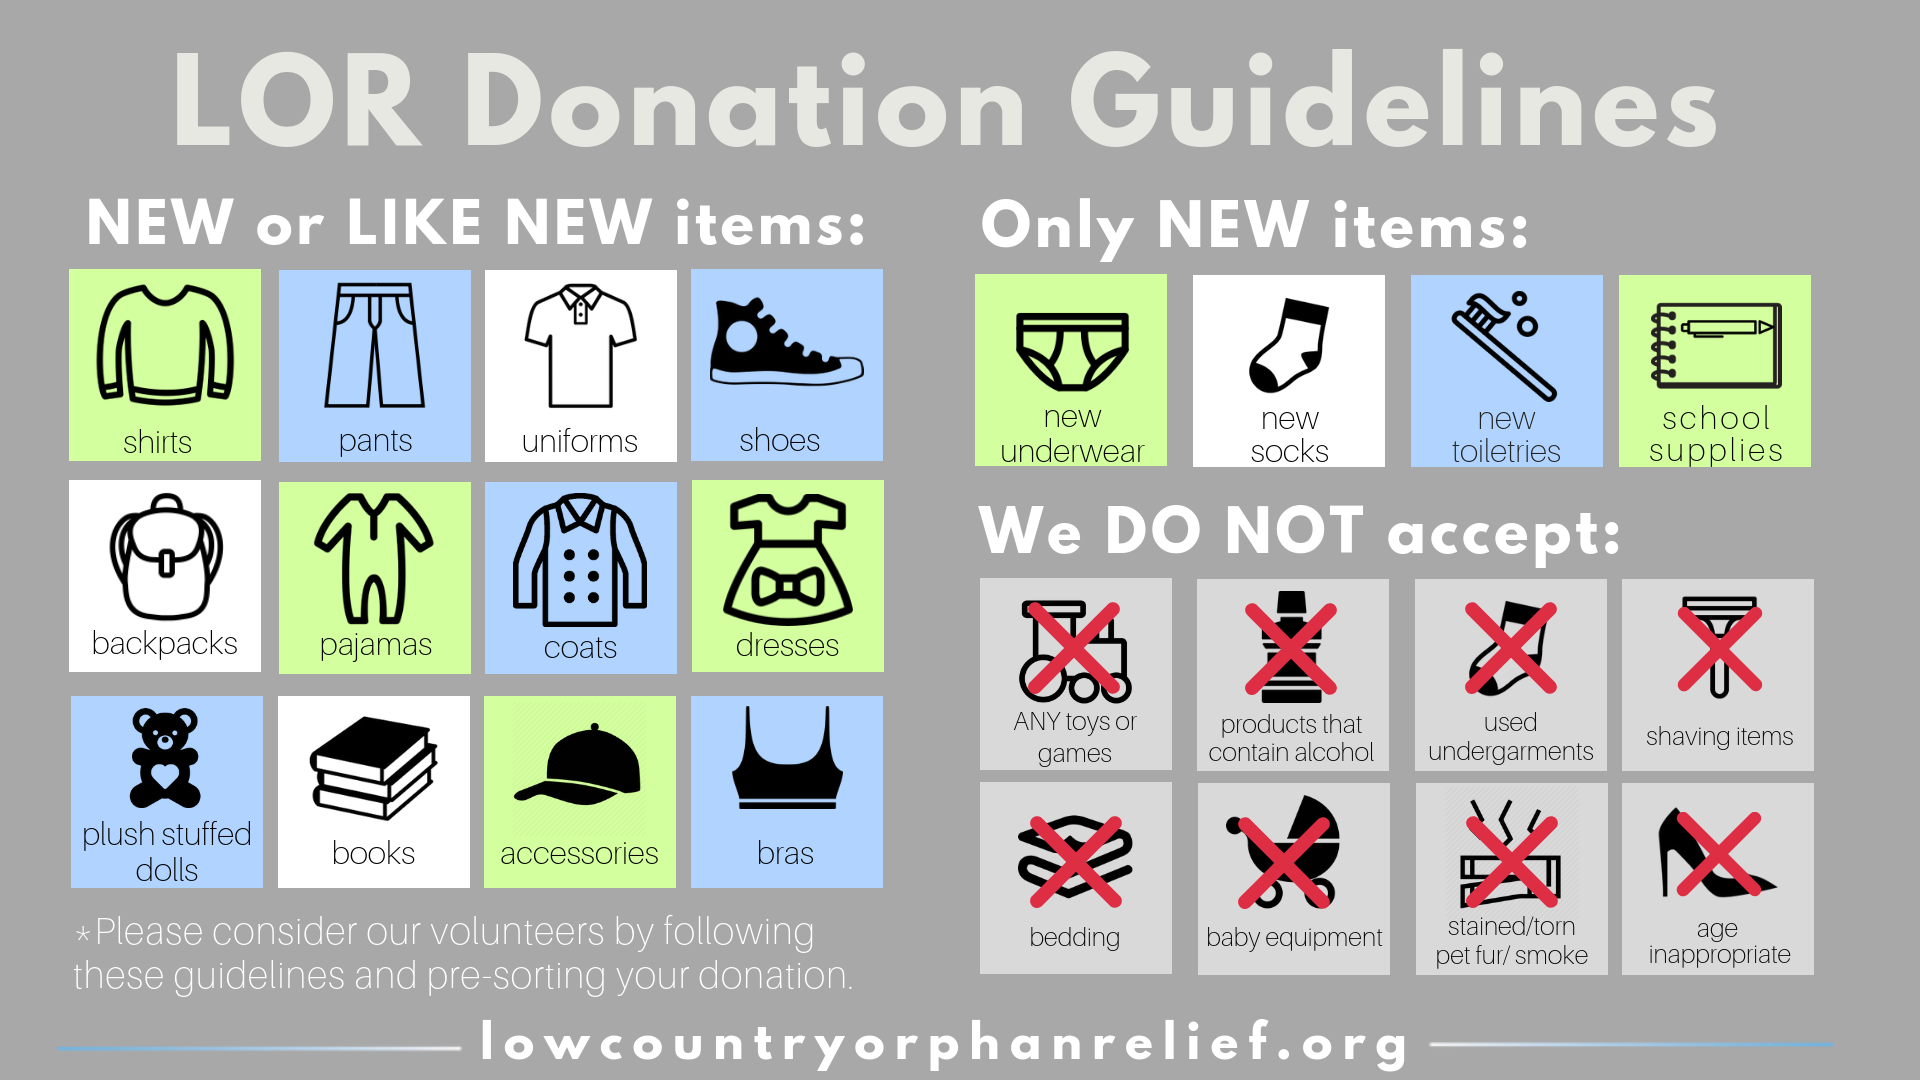 LOR Item Donations NEW